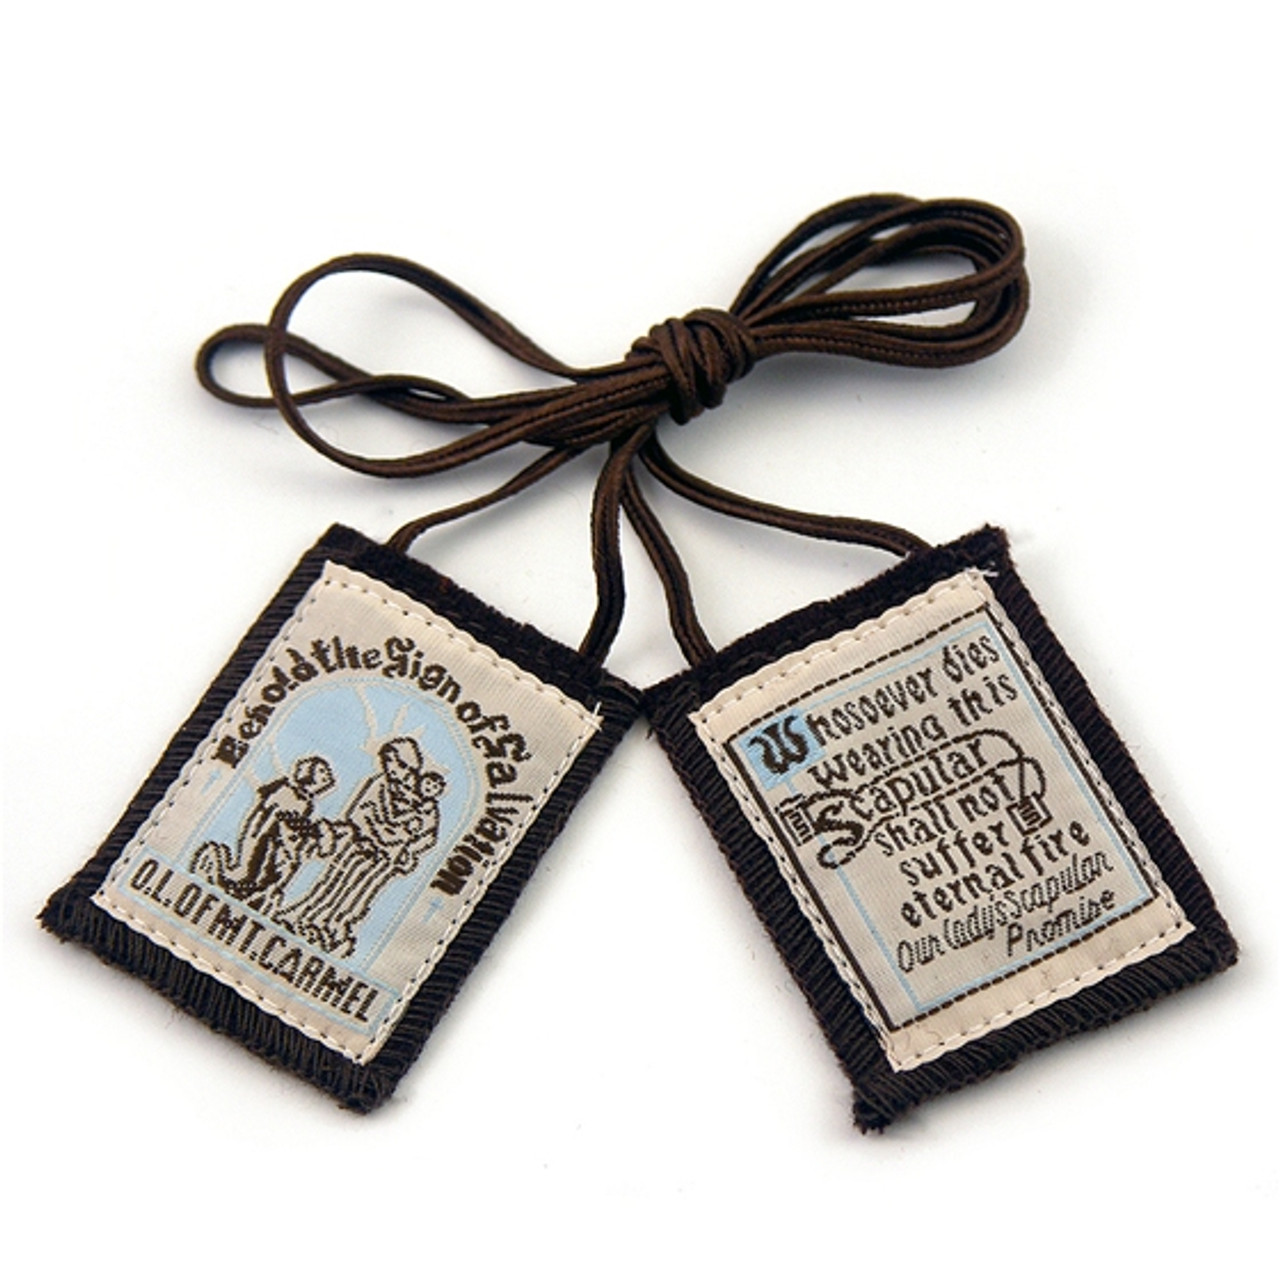 Our Lady of Mount Carmel Brown Scapular